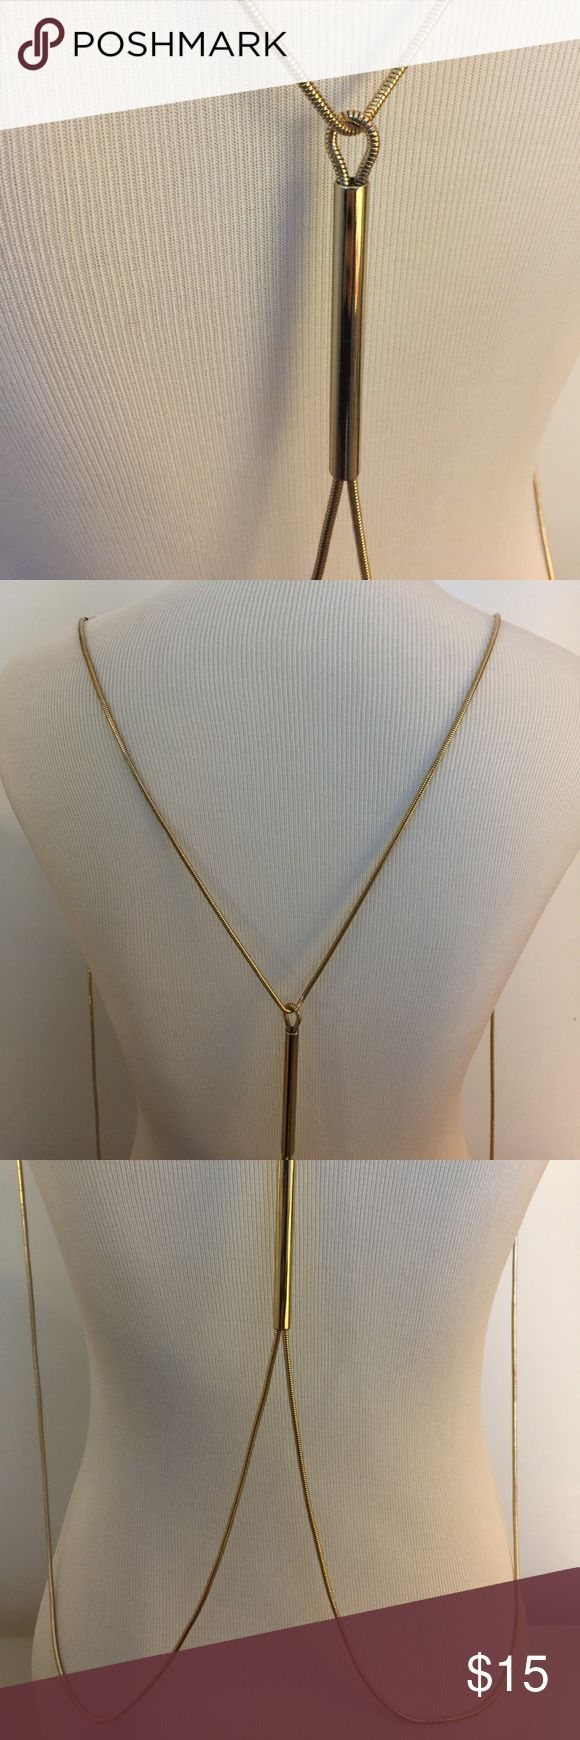 Gold chain harness necklace Aldo gold chain harness necklace, never used, no signs of wear Aldo Jewelry Necklaces